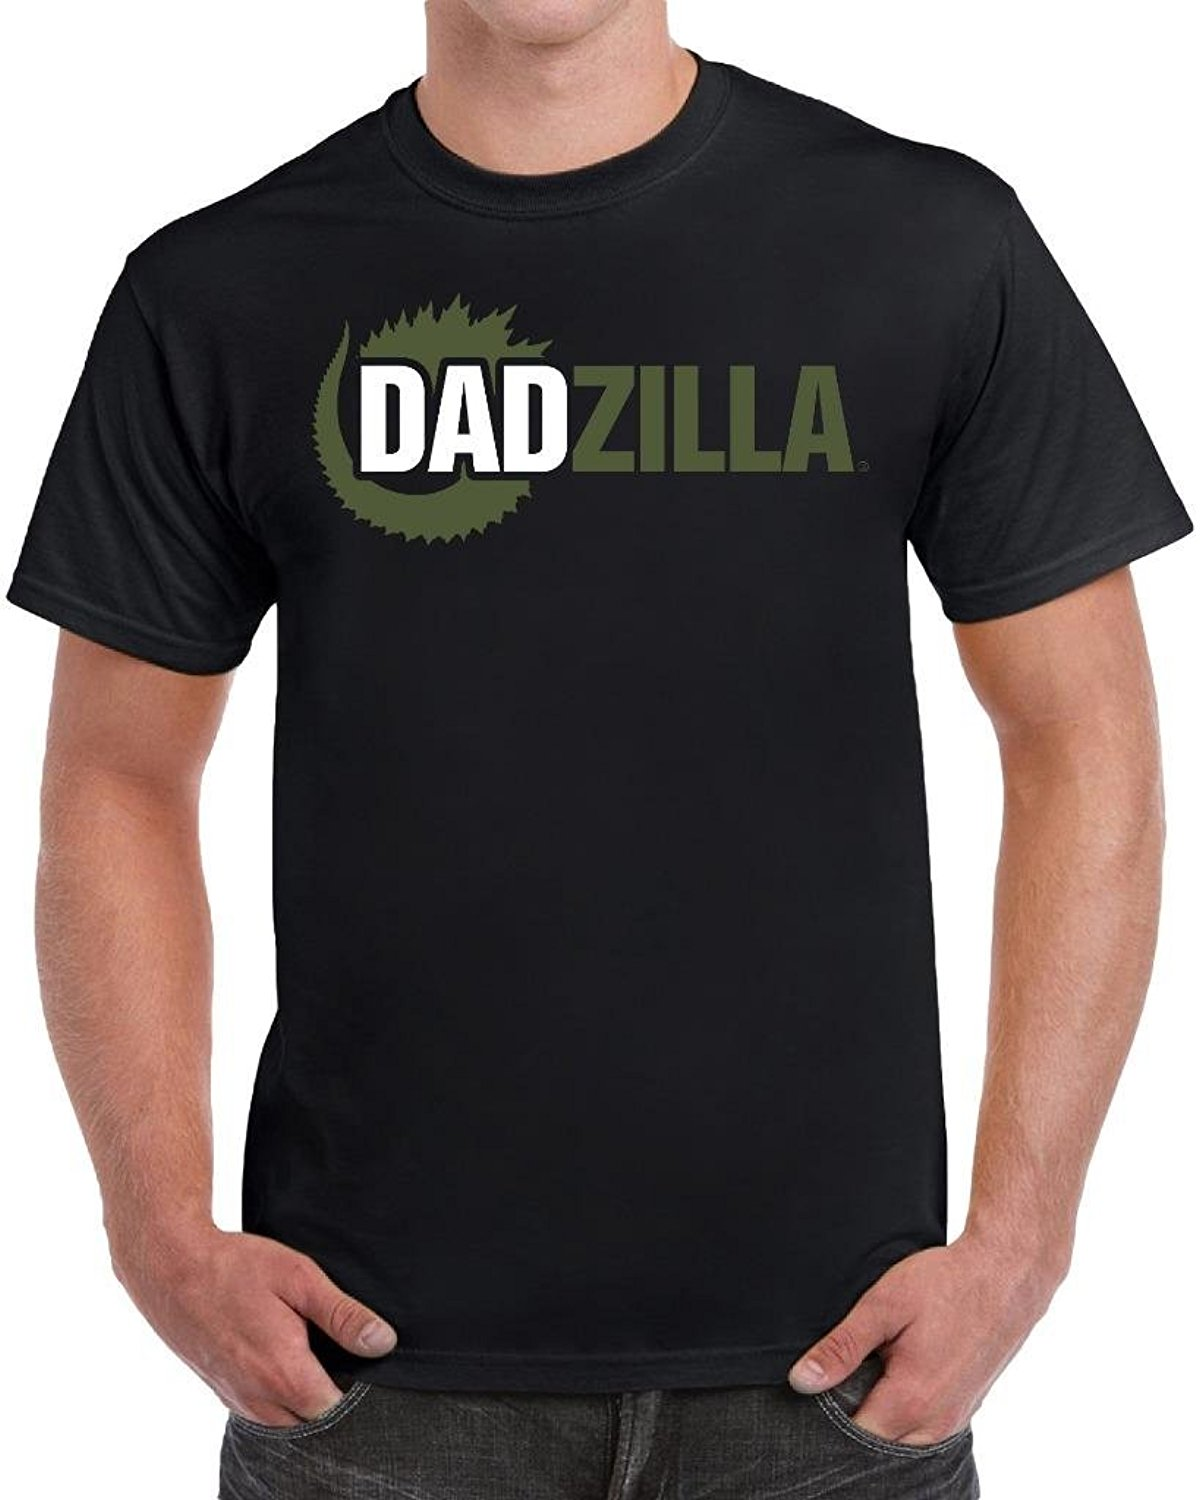 tees geek Dadzilla Birthday Gifts For Dad Fathers Day Novelty Parody T-Shirt